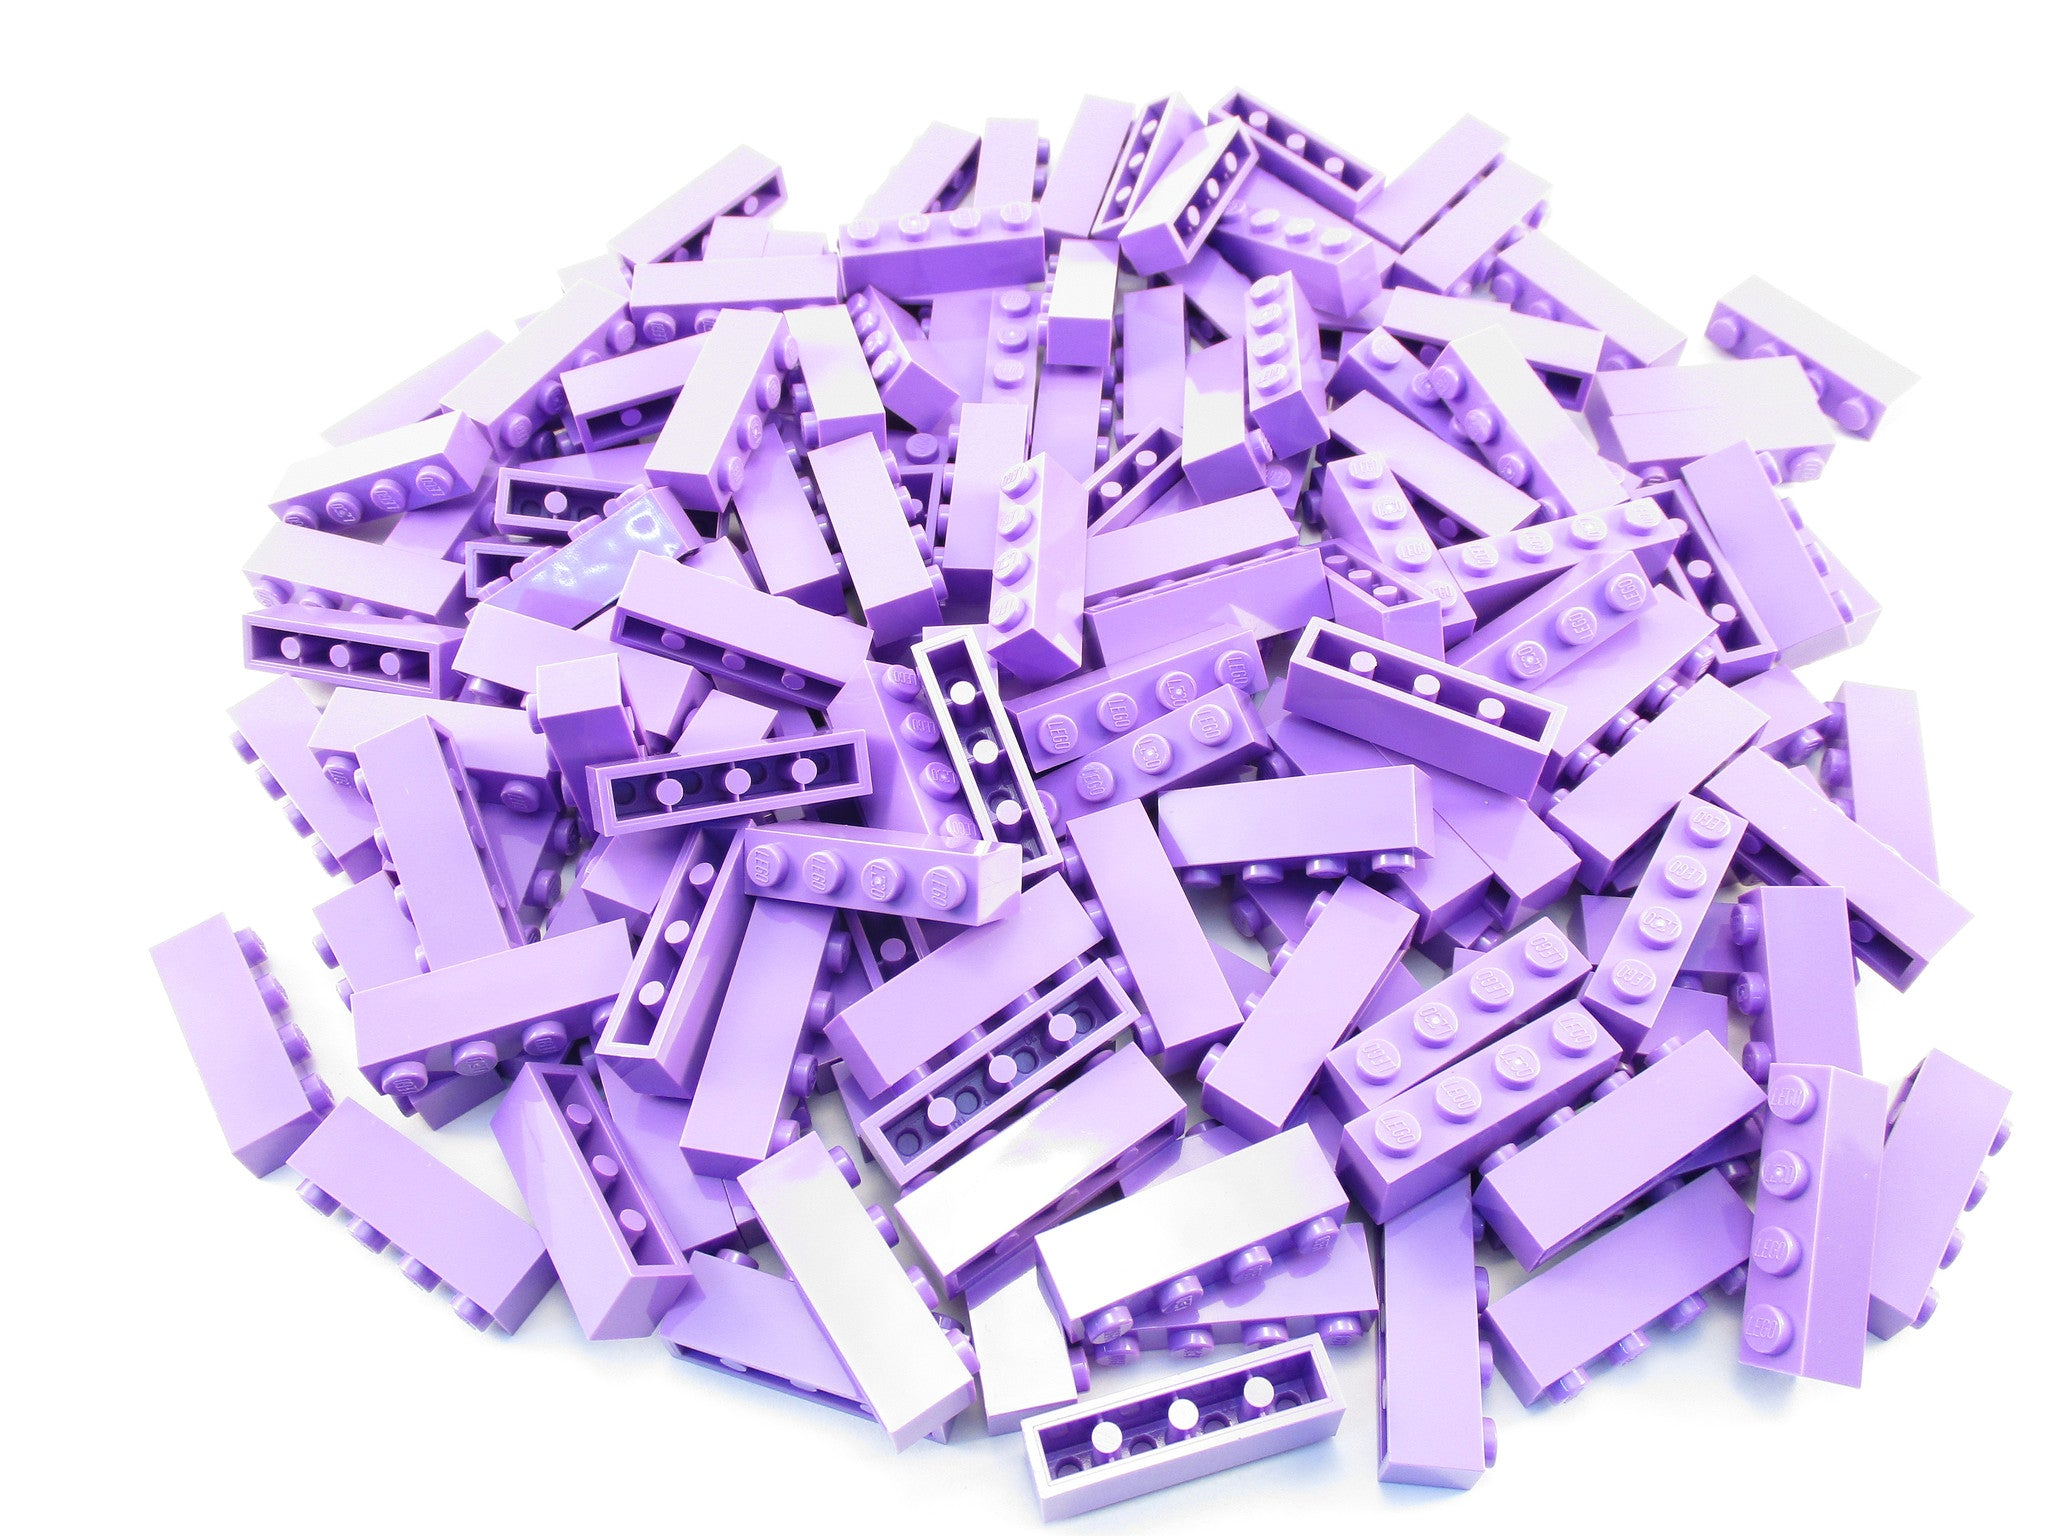 LEGO Medium Lavender Brick 1x4 Lot of 100 Parts Pieces 3010